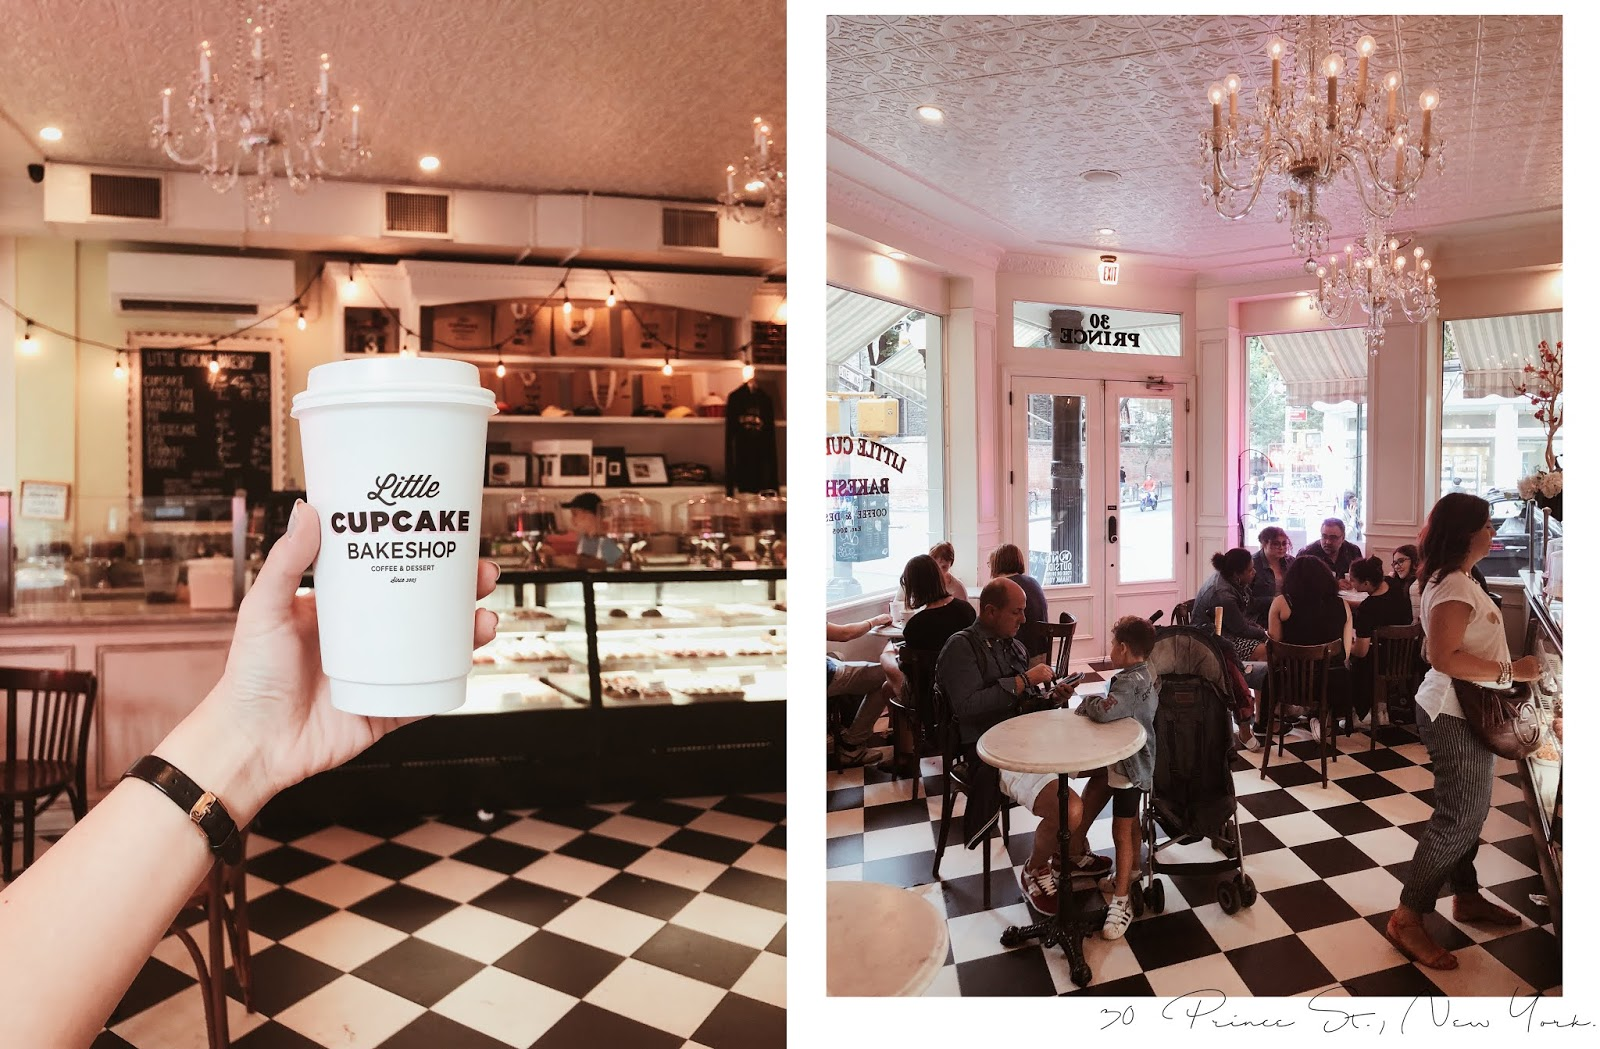 new york instagram places guide food spots instagrammable worthy little cupcake bakeshop soho 2